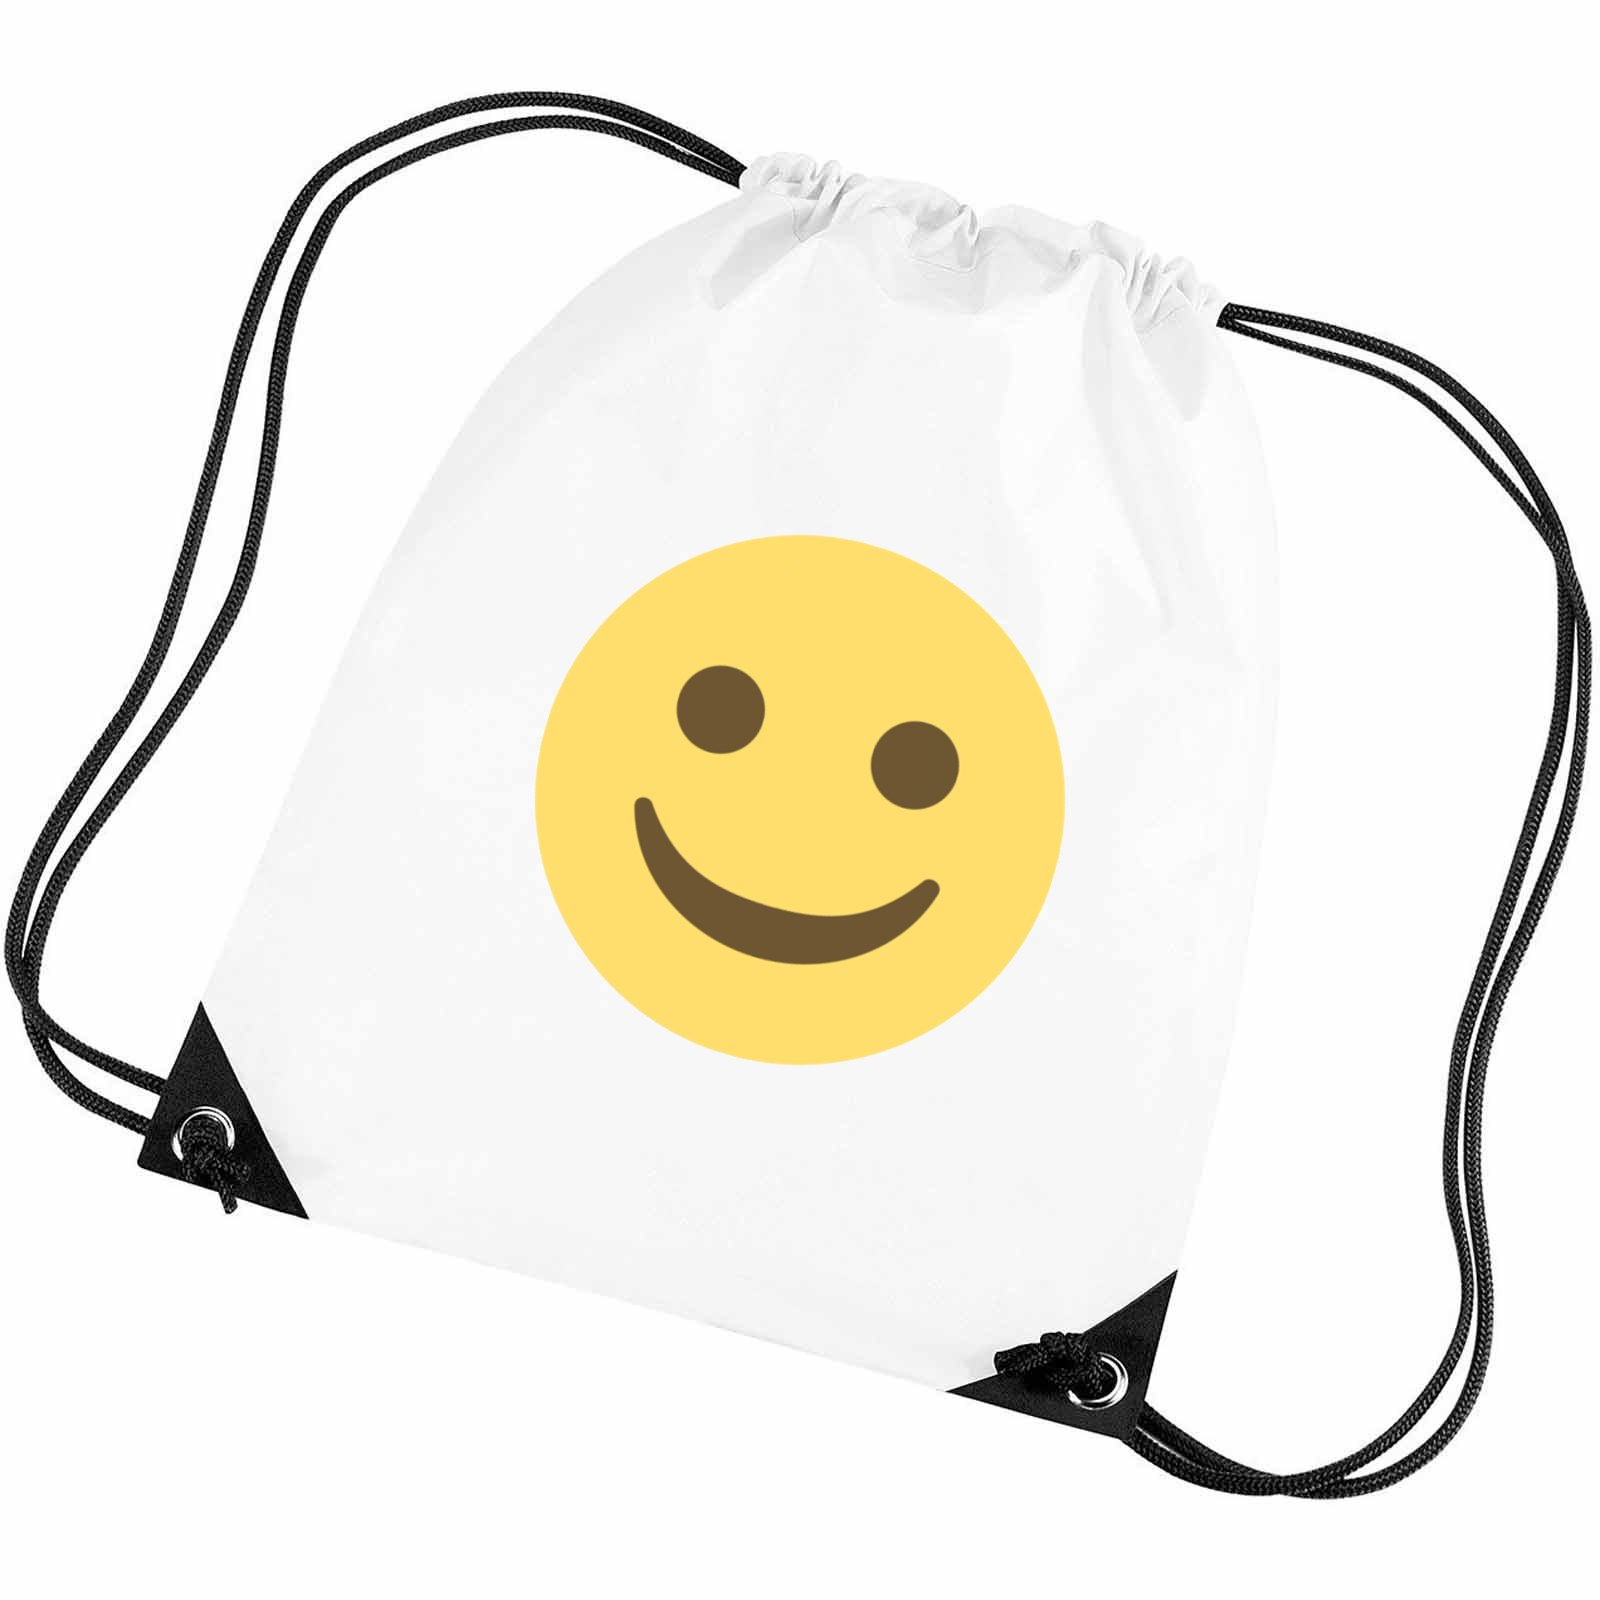 feae616b6003 Emoji White Smiling Face Gym Bag. Available in many colours. Free ...